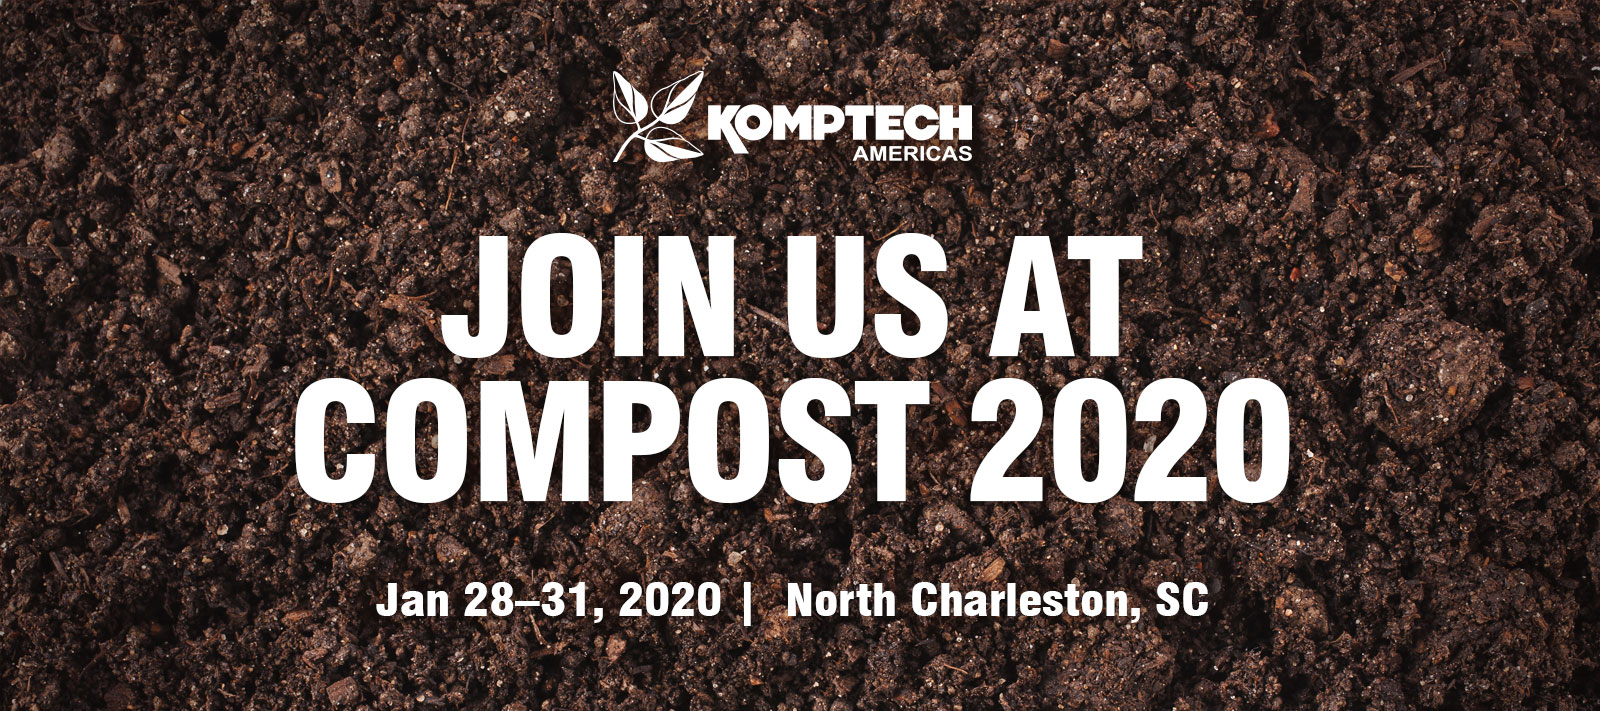 Join us at COMPOST 2020 - Jan 28–31, 2020 | North Charleston, SC